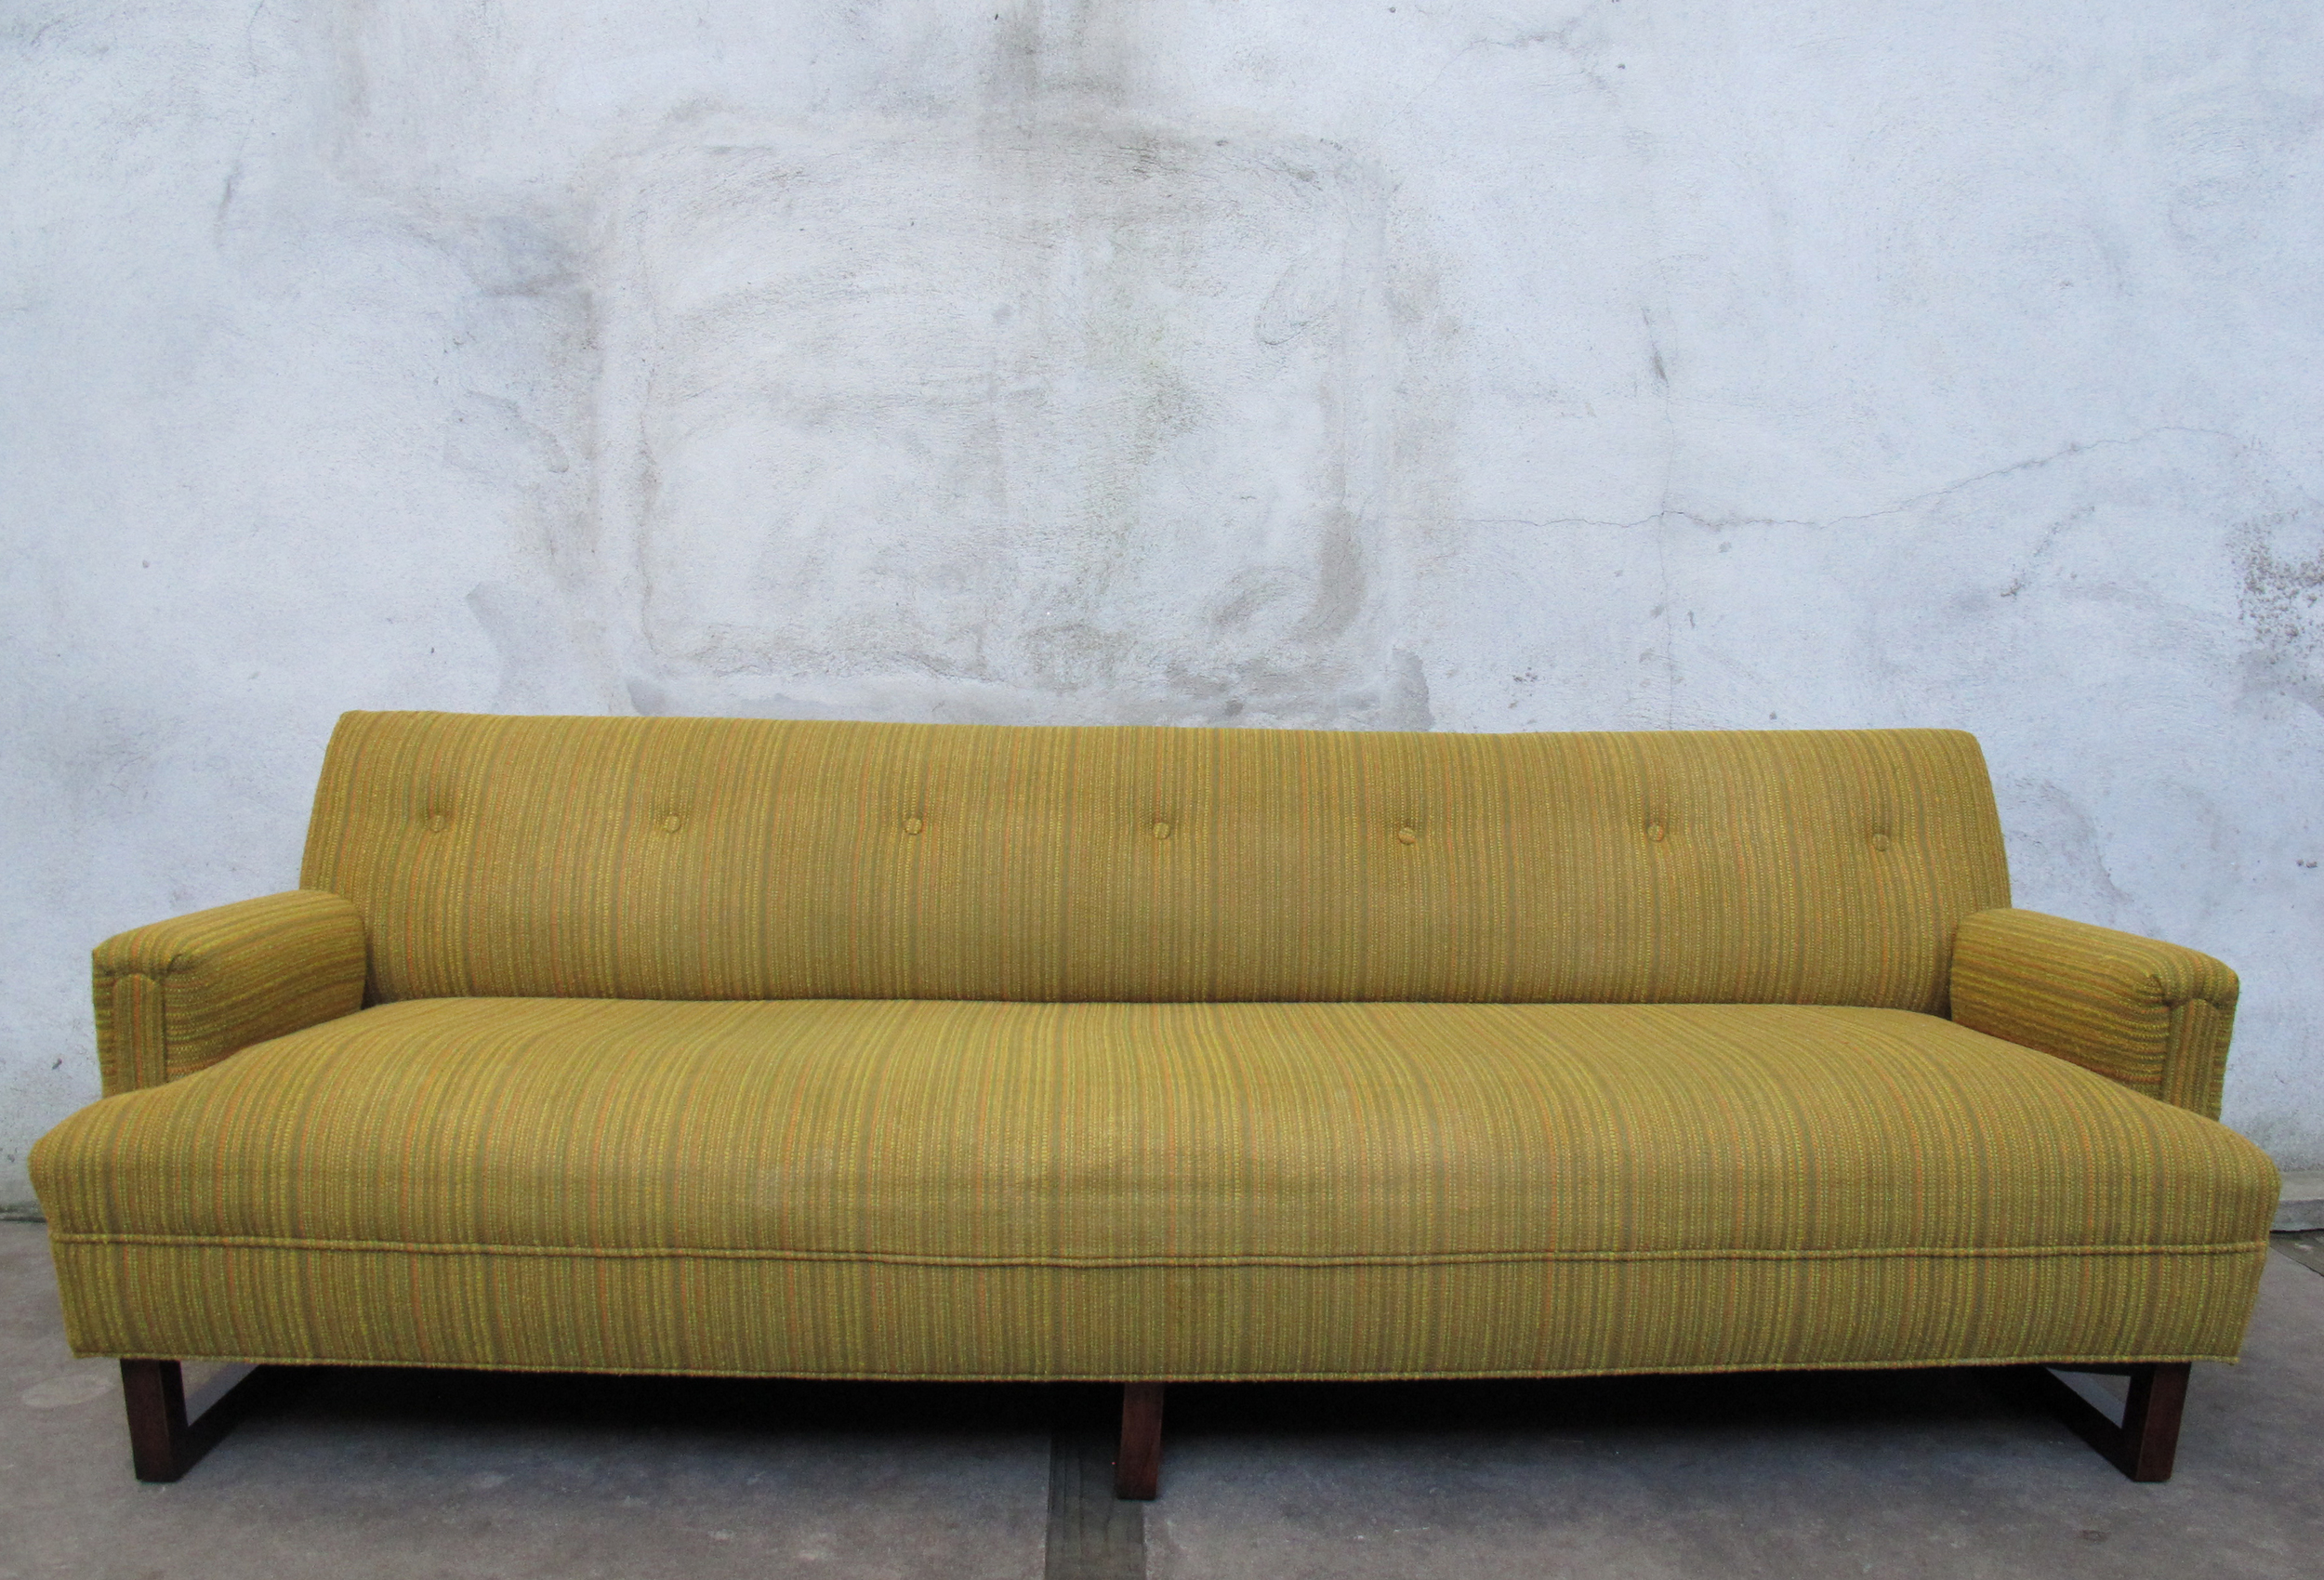 MID CENTURY 1950s GREEN SOFA WITH SCULPTED LEGS